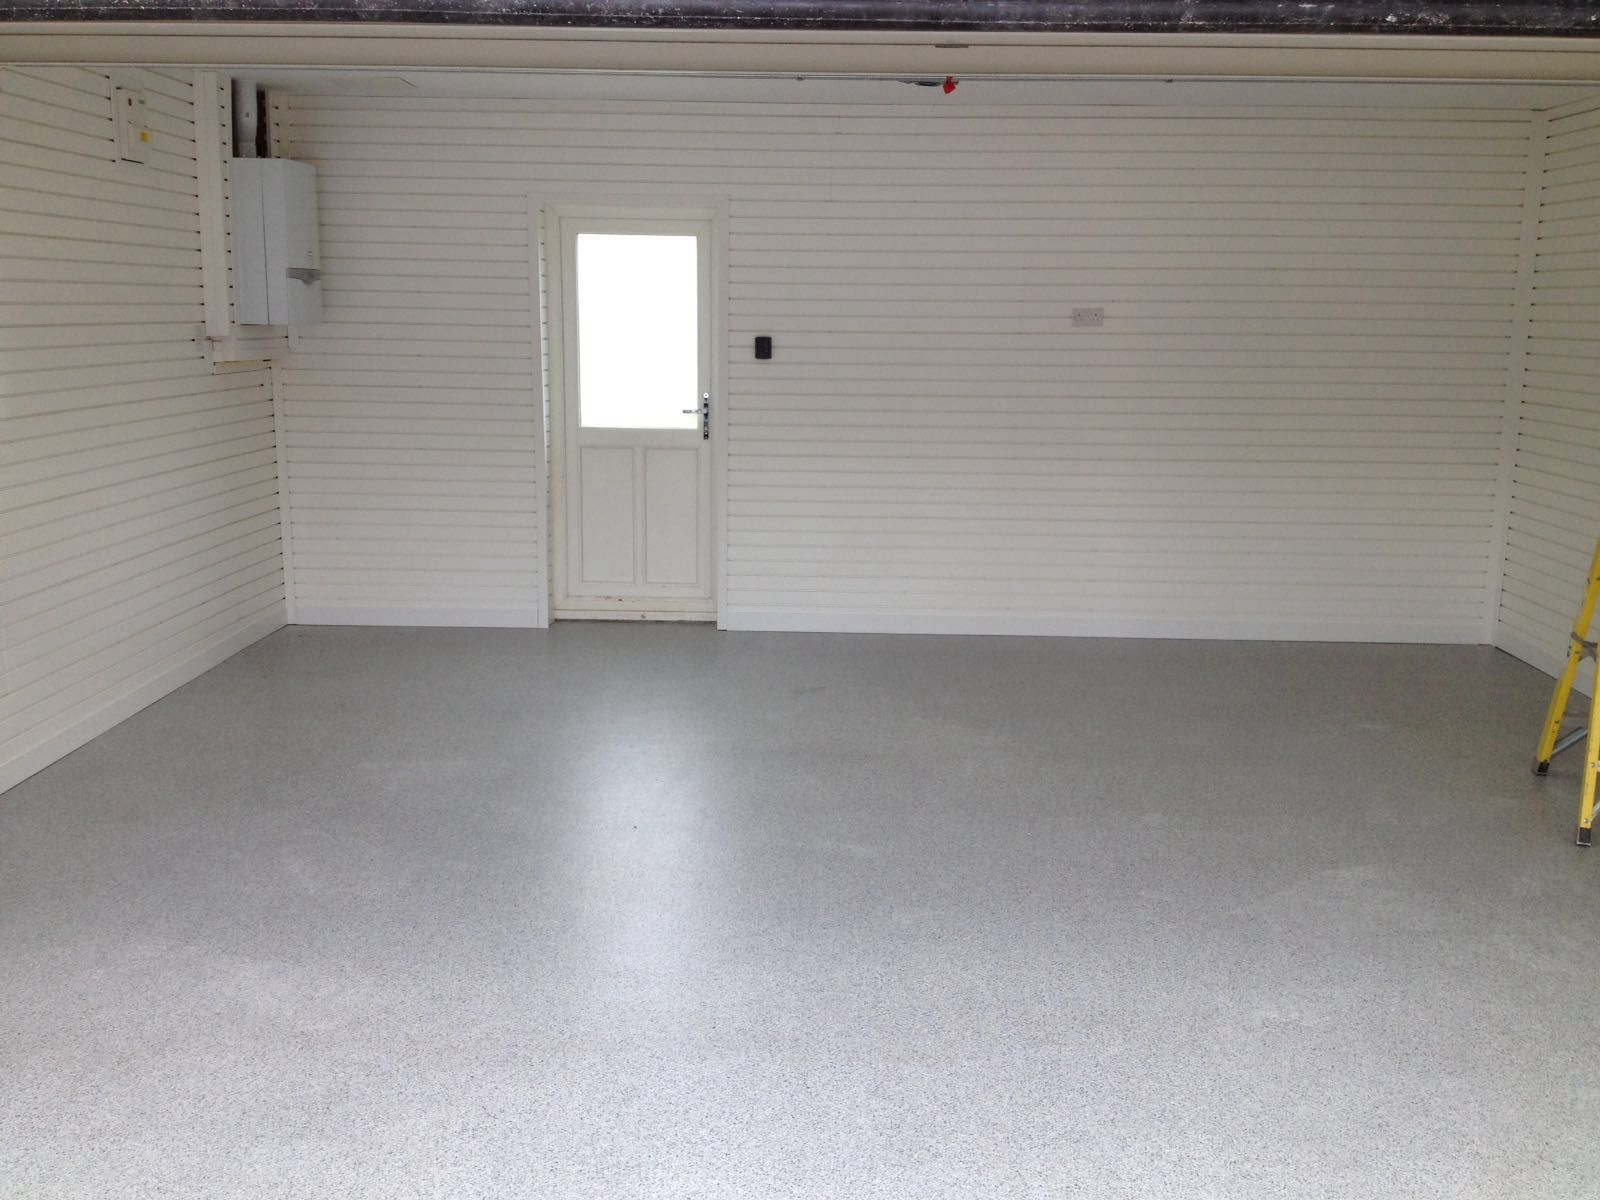 Marvelous A Beautifully Seamless Resin Floor In A Lovely Light Grey Creates A Clean  And Crisp Finish To The Garage. Light Bounces Off Of The Walls And Floor To  Create ...